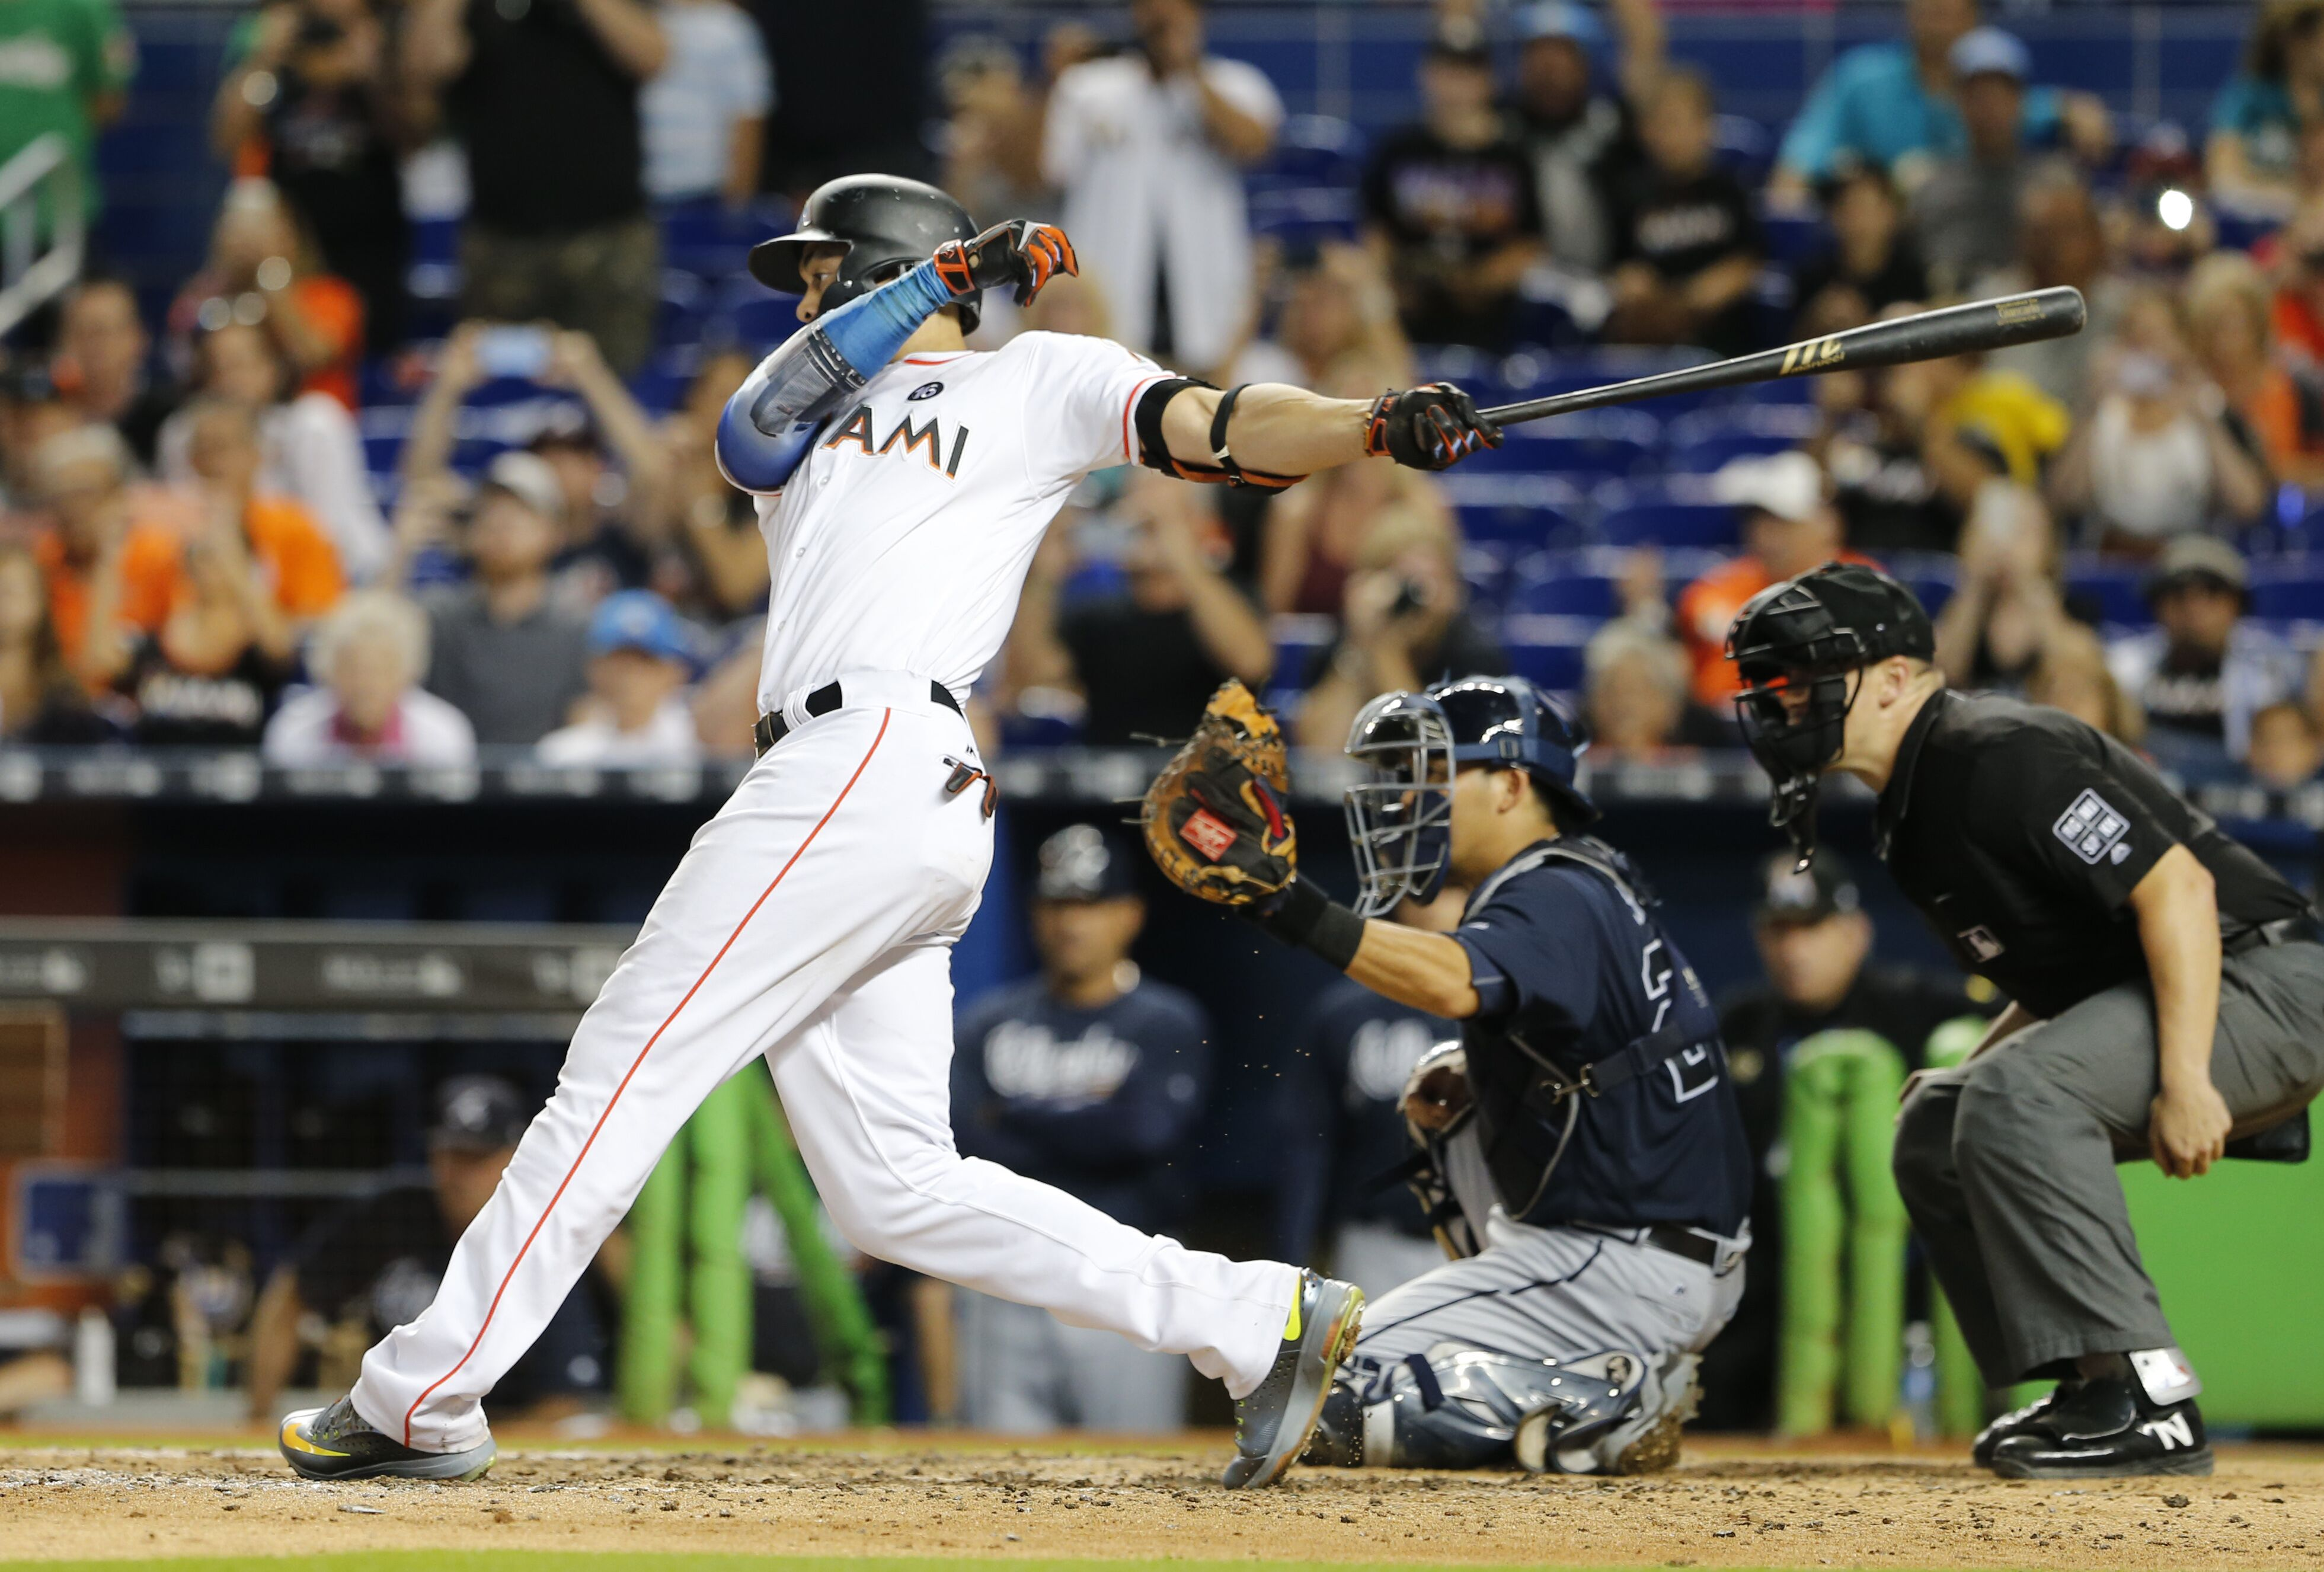 856418686-atlanta-braves-v-miami-marlins.jpg